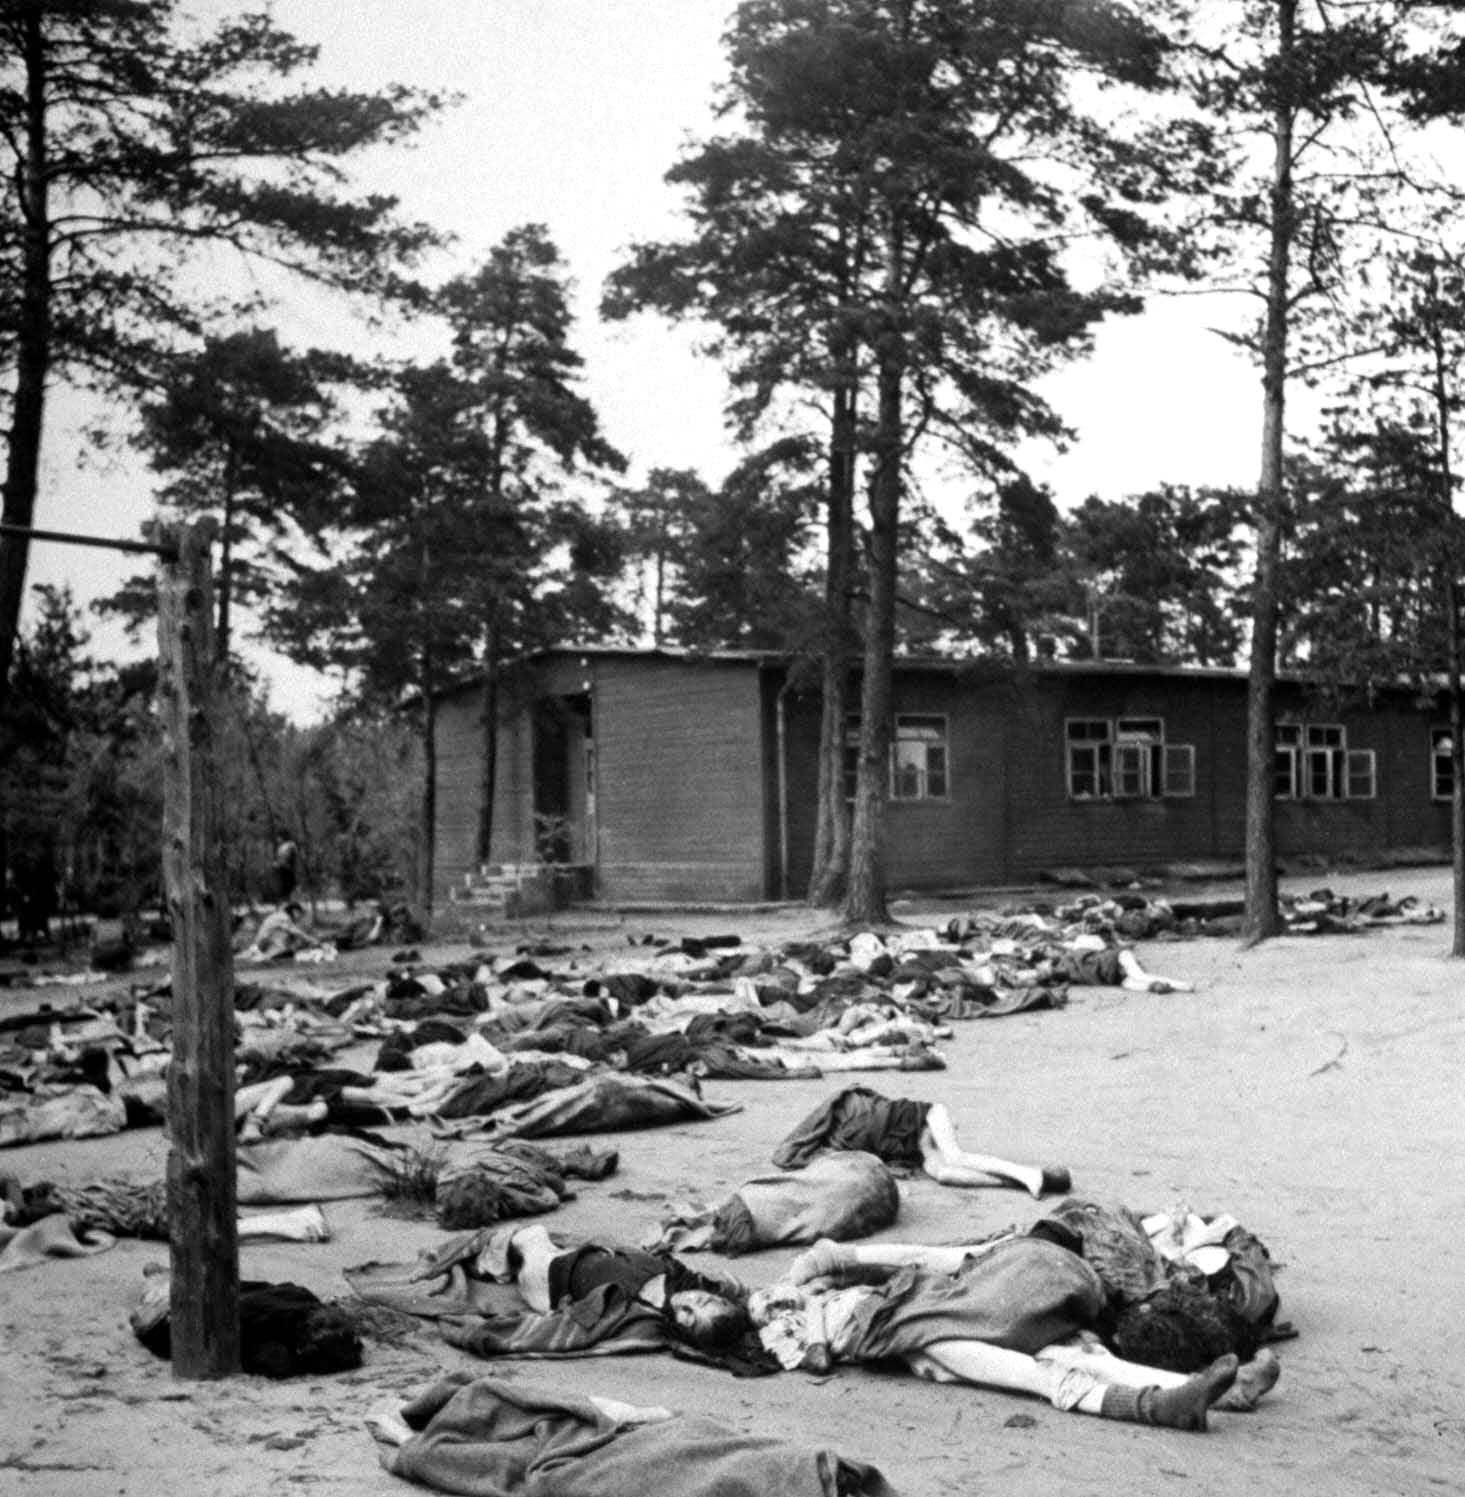 Corpses cover the ground at the Bergen-Belsen concentration camp, 1945.